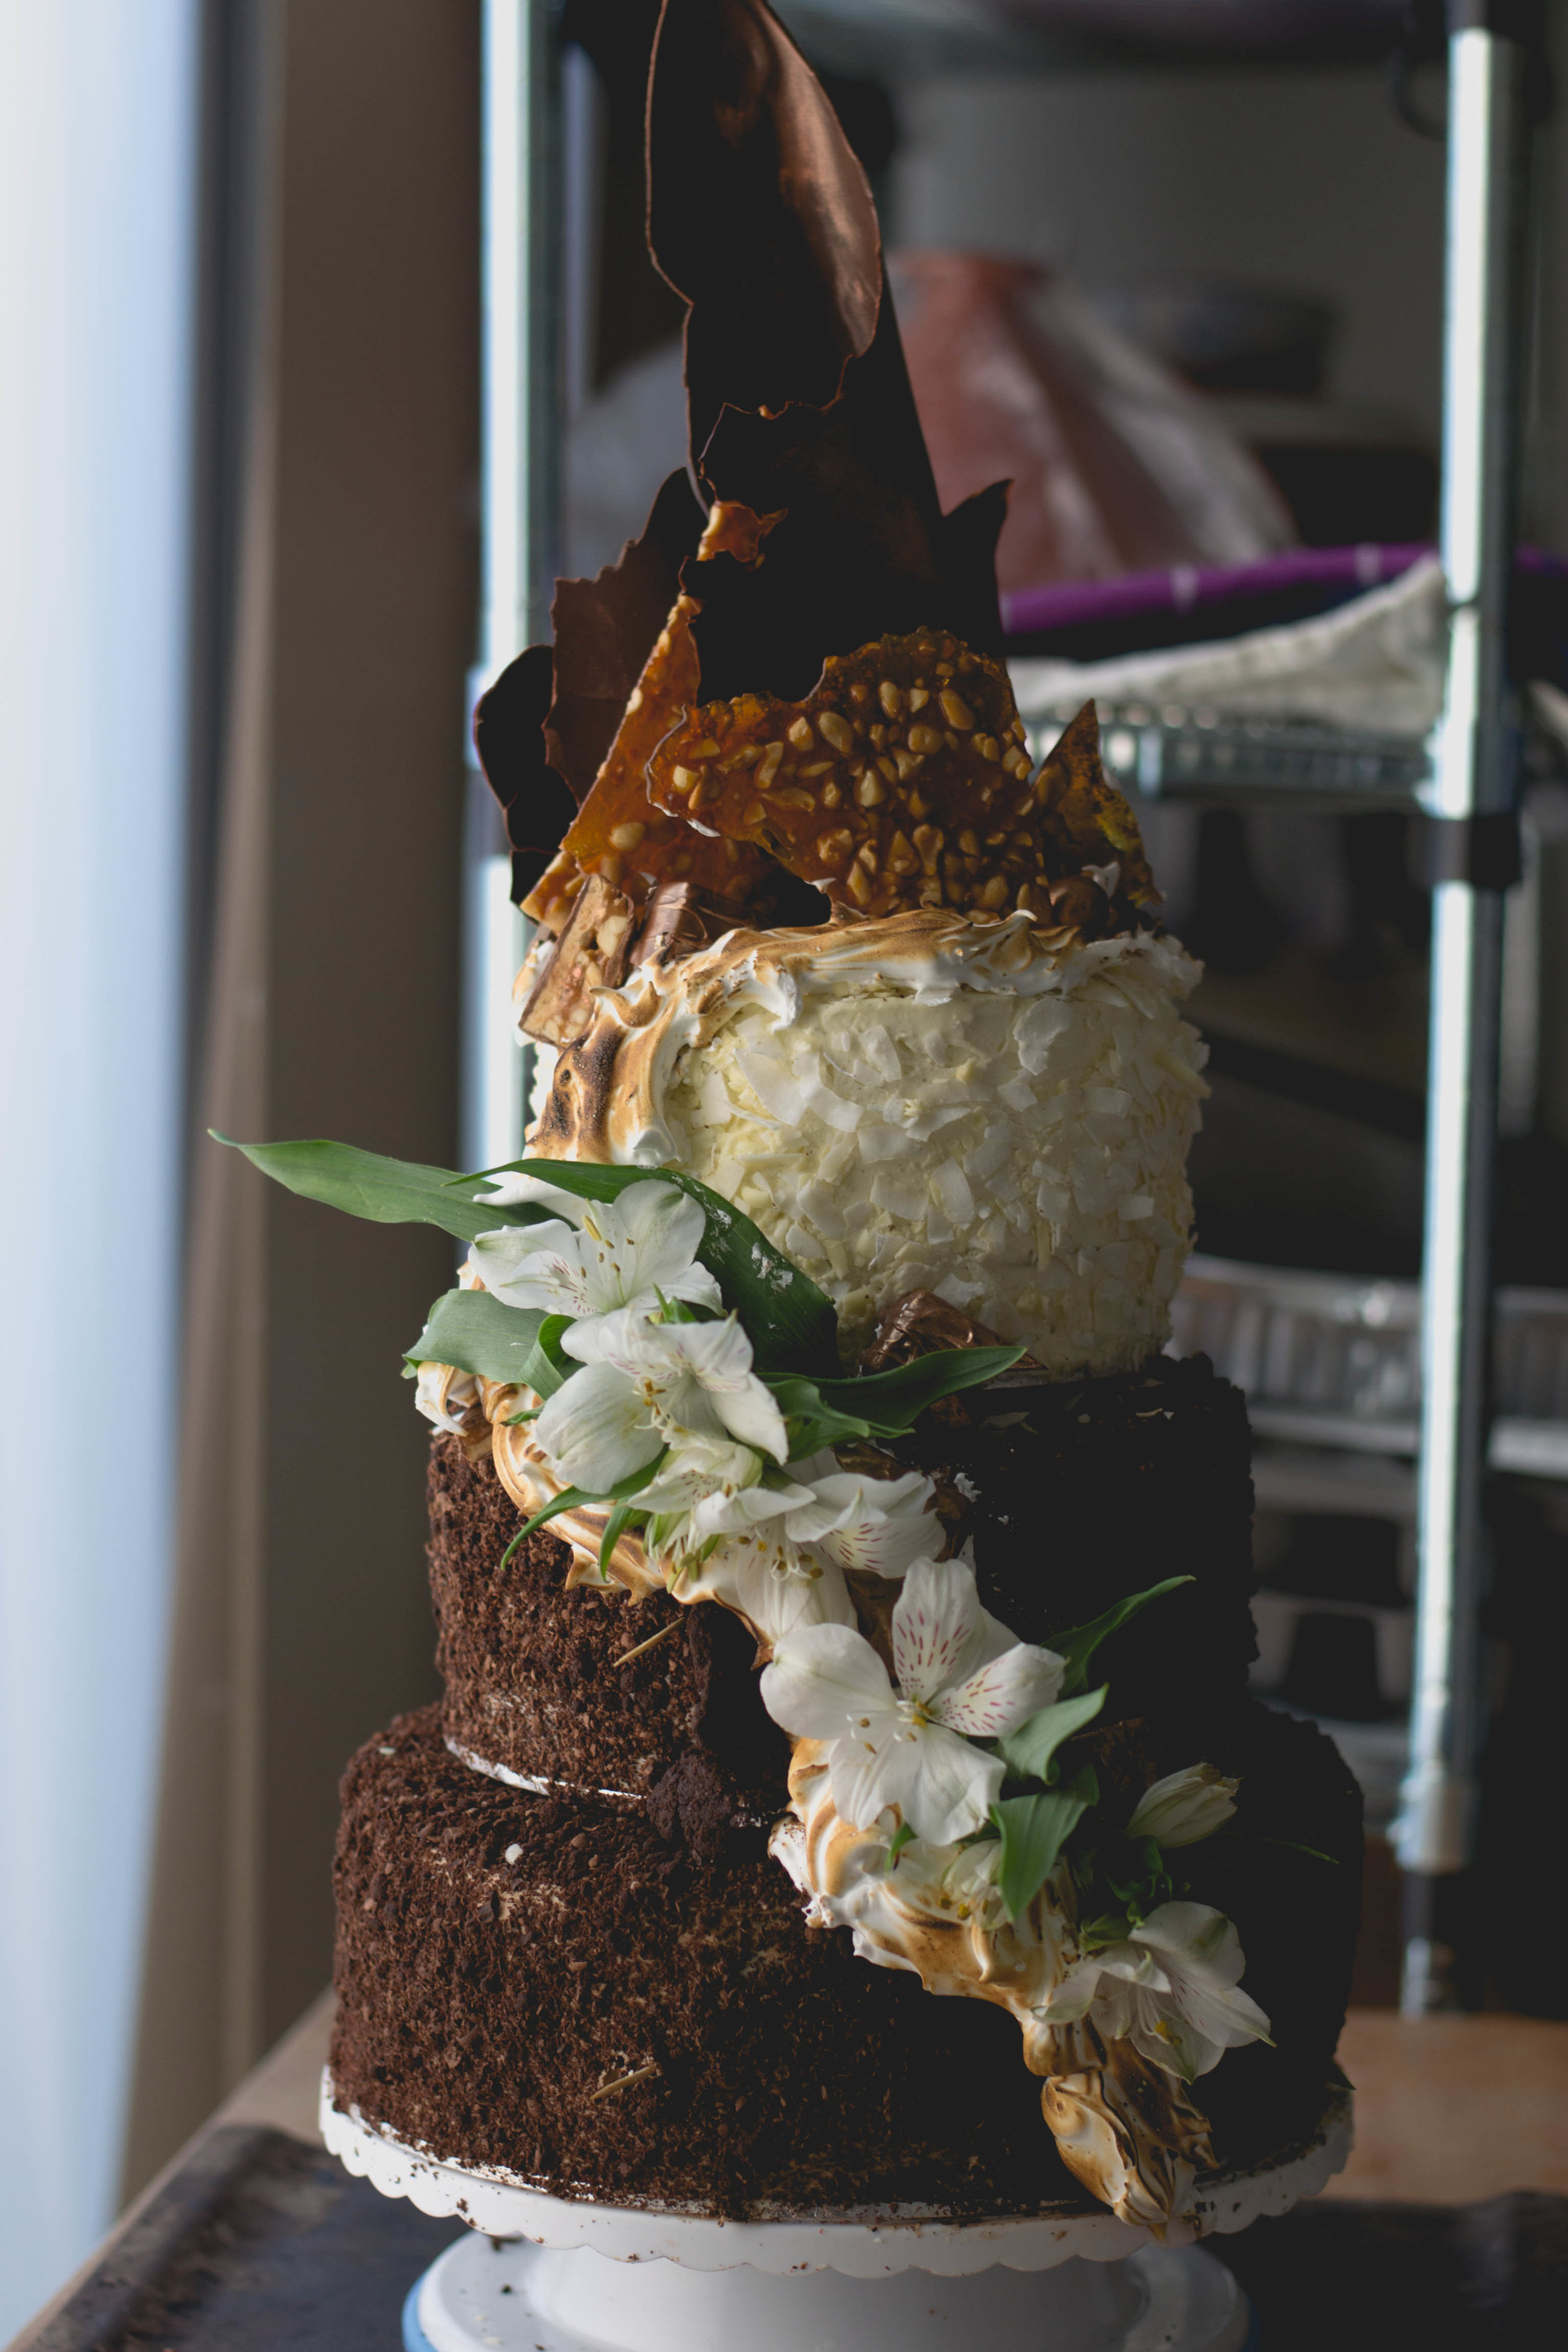 priya and robs wedding cake.jpg